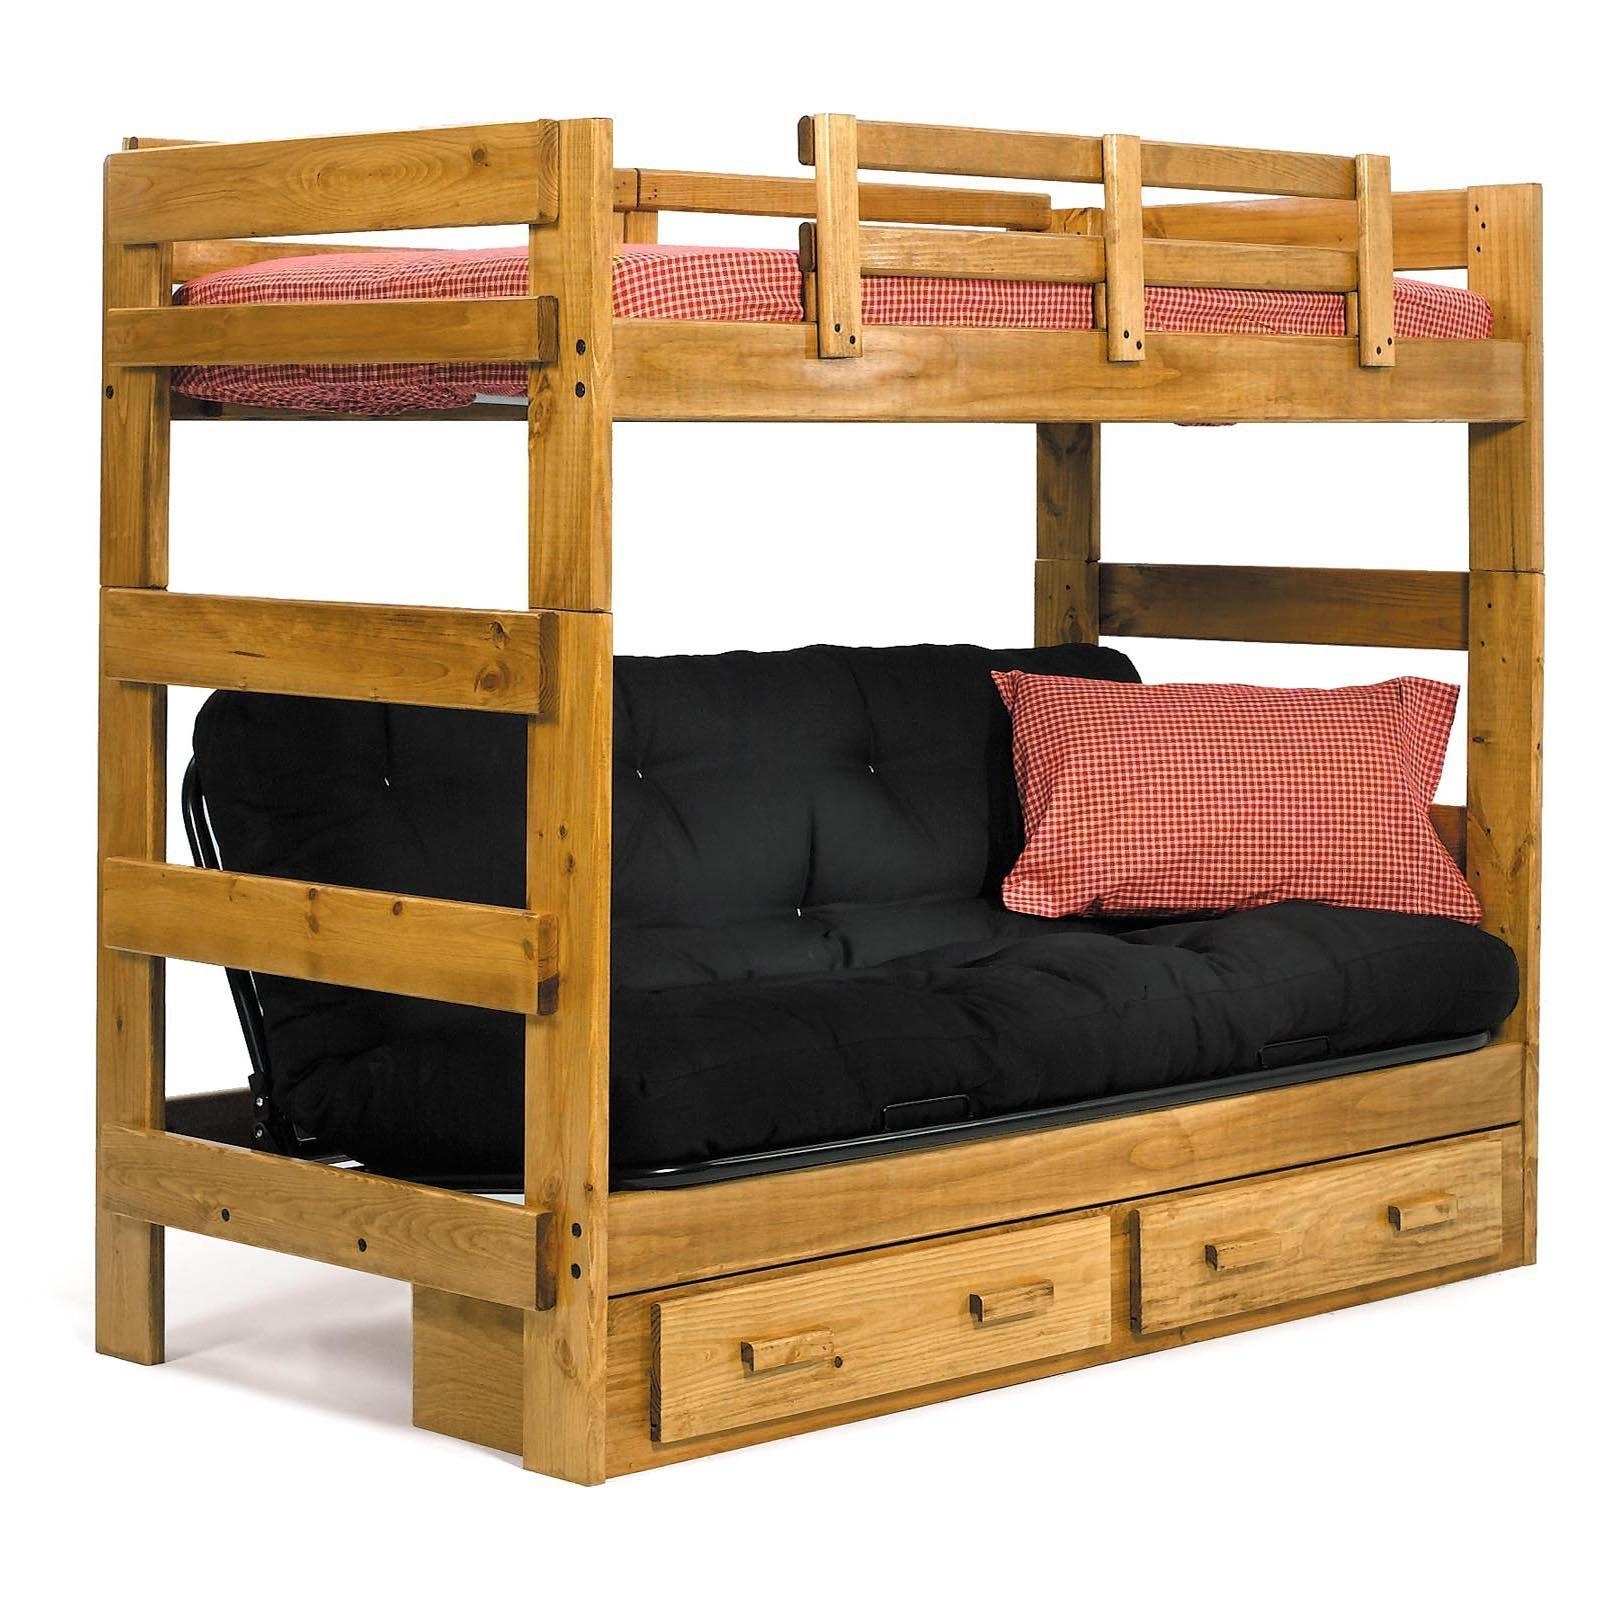 Bedroom: Endearing Secret Loft Bed With Futon For Bedroom Intended For Bunk Bed With Sofas Underneath (Image 6 of 20)